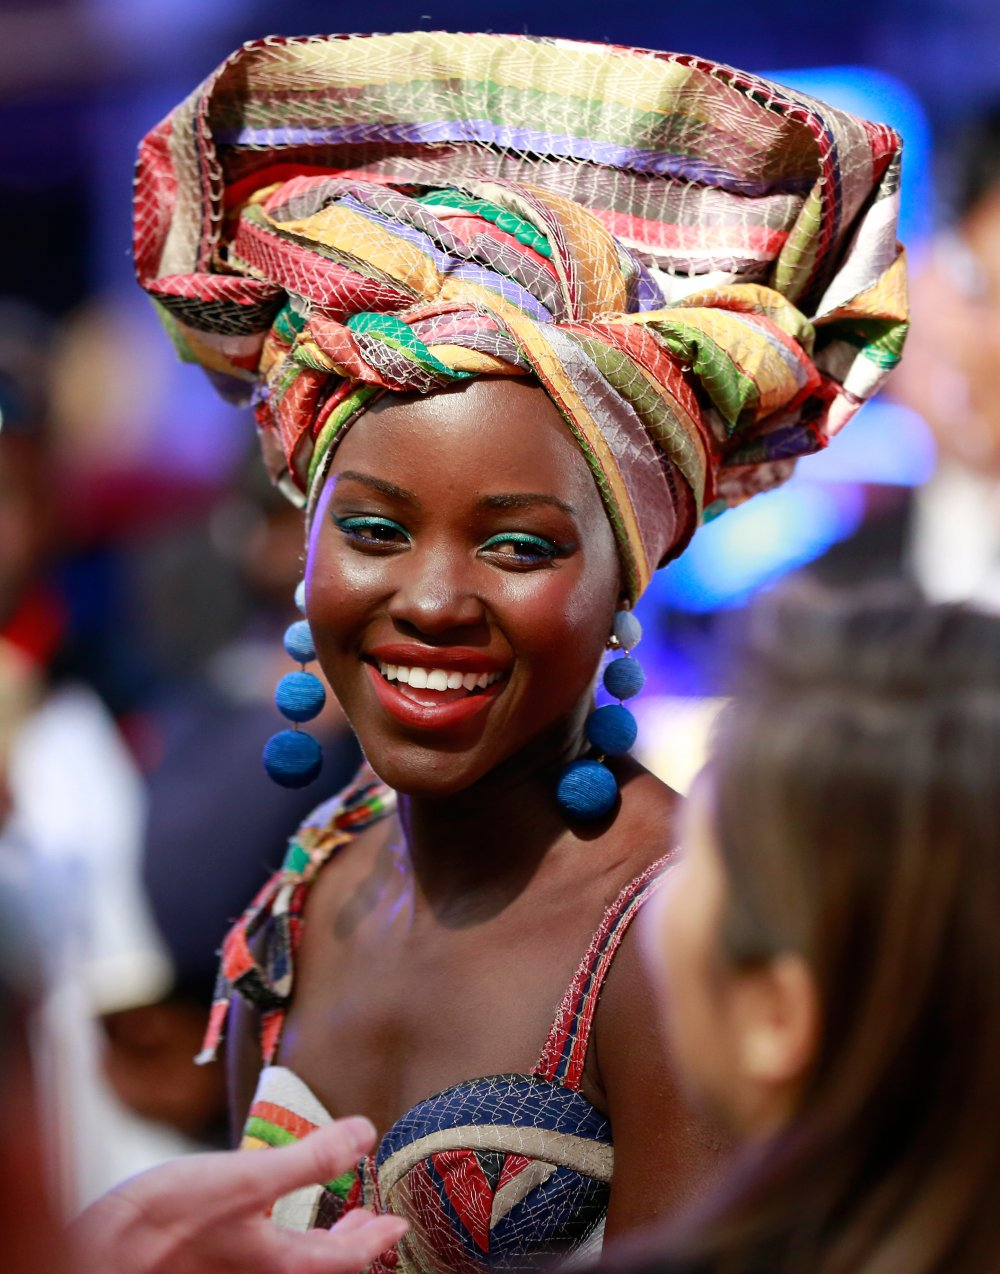 Lupita Nyong'o attends the Queen of Katwe Virgin Atlantic Gala screening during the 60th BFI London Film Festival